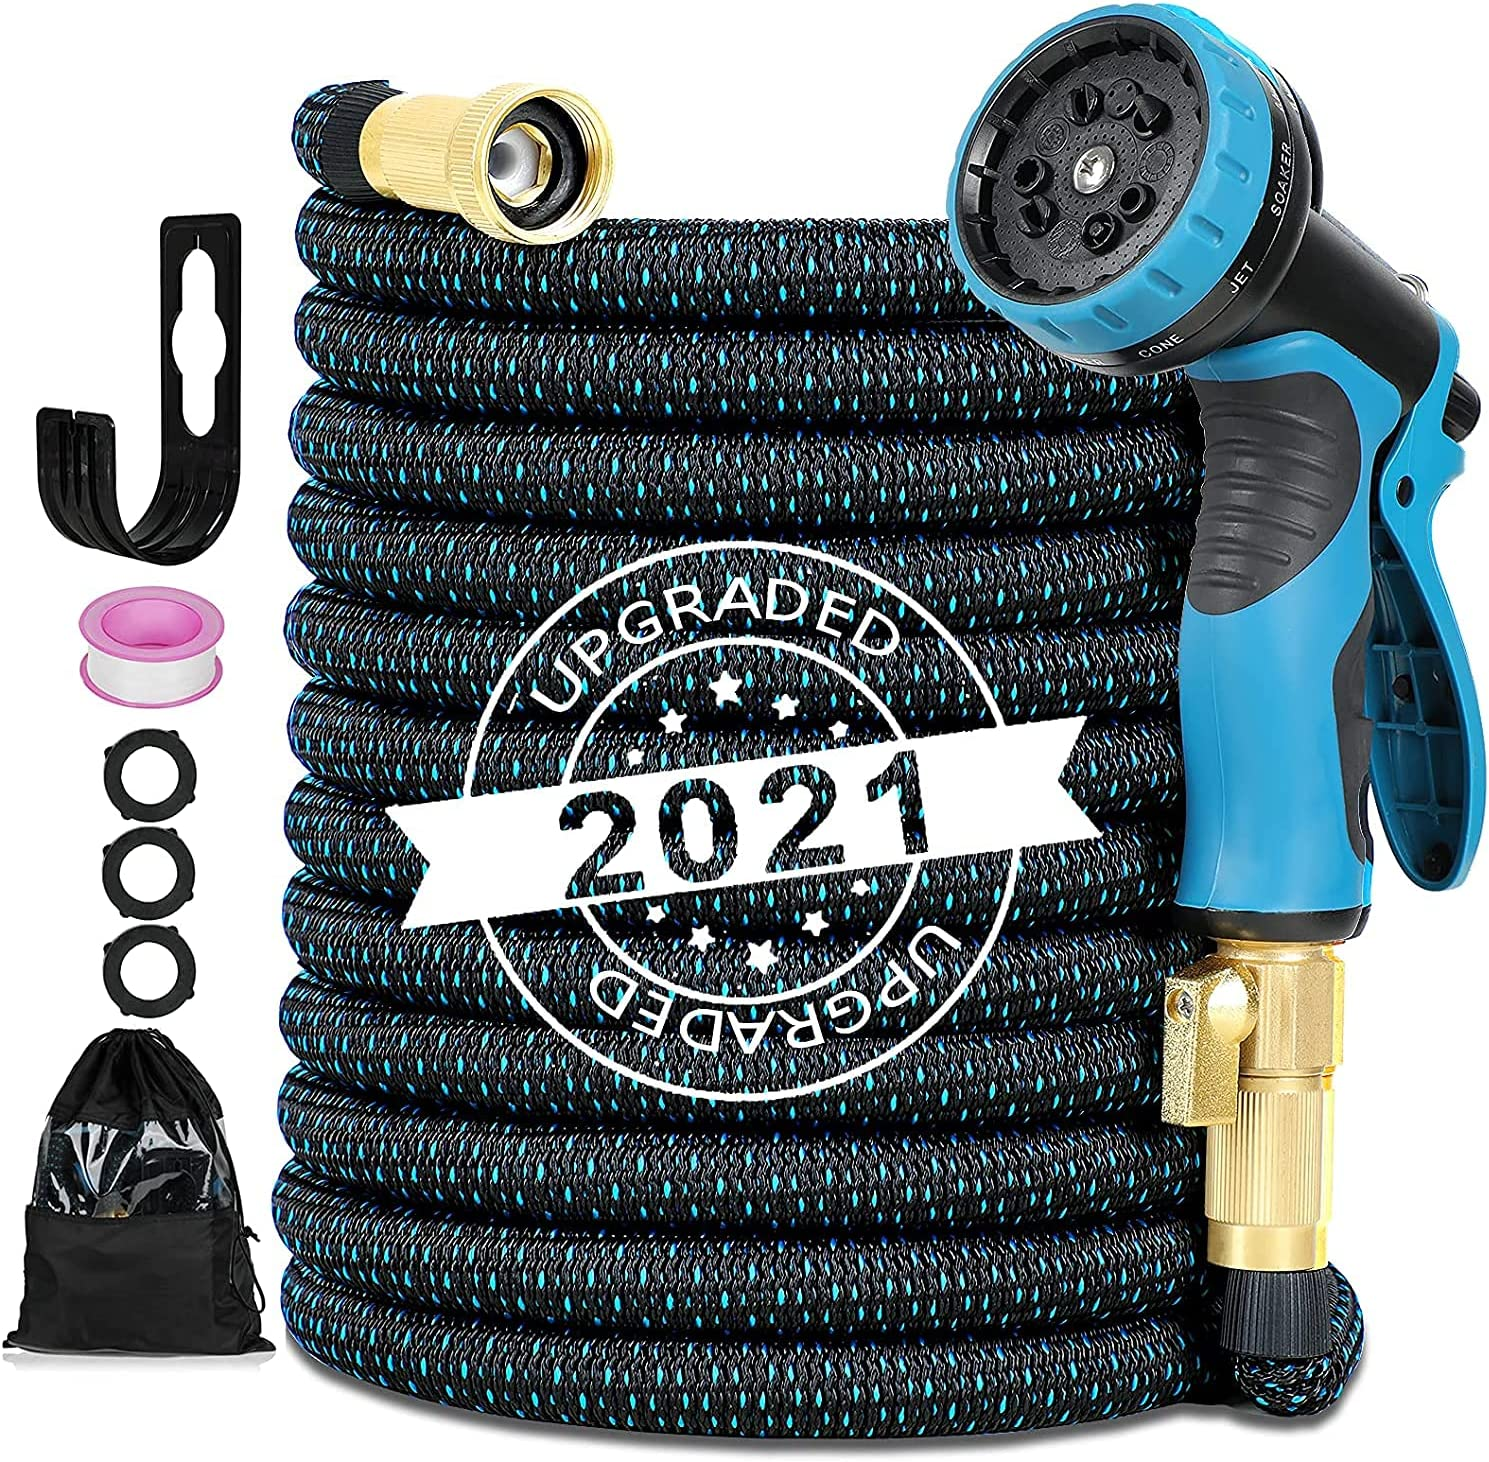 AQSURE Garden Hose 50ft , Expandable Hose with 10 Function Spray Nozzle, Flexible No-leak Garden Hose with Solid Brass Fittings, 3750D Durable Yard Hose Car Wash Hose for House/ Pet/ Floor Wash